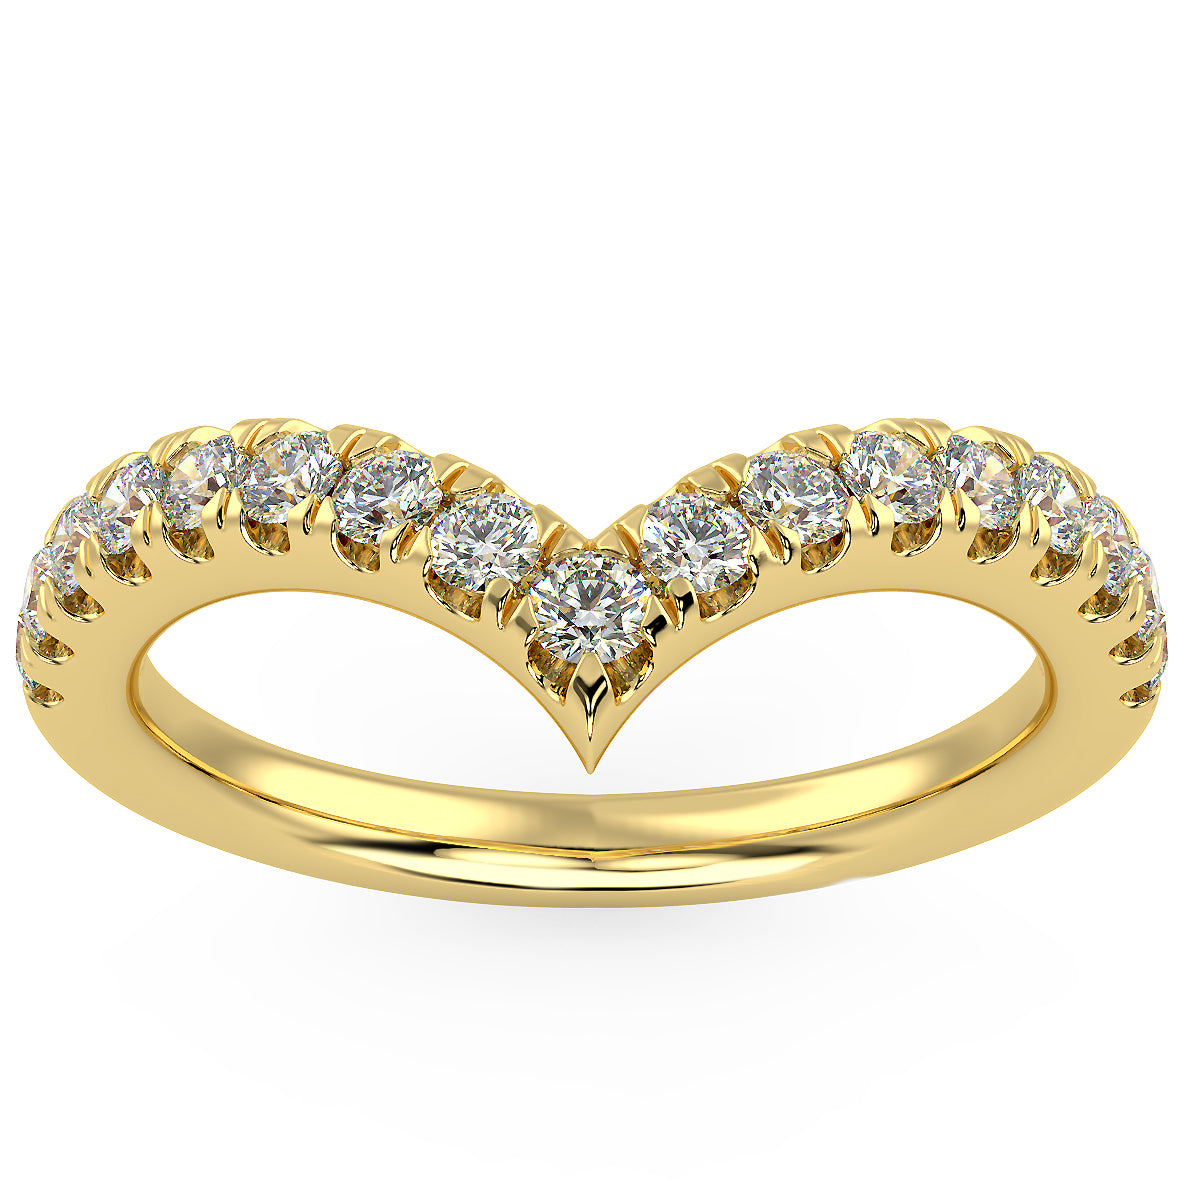 Gravity Ring in Yellow Gold